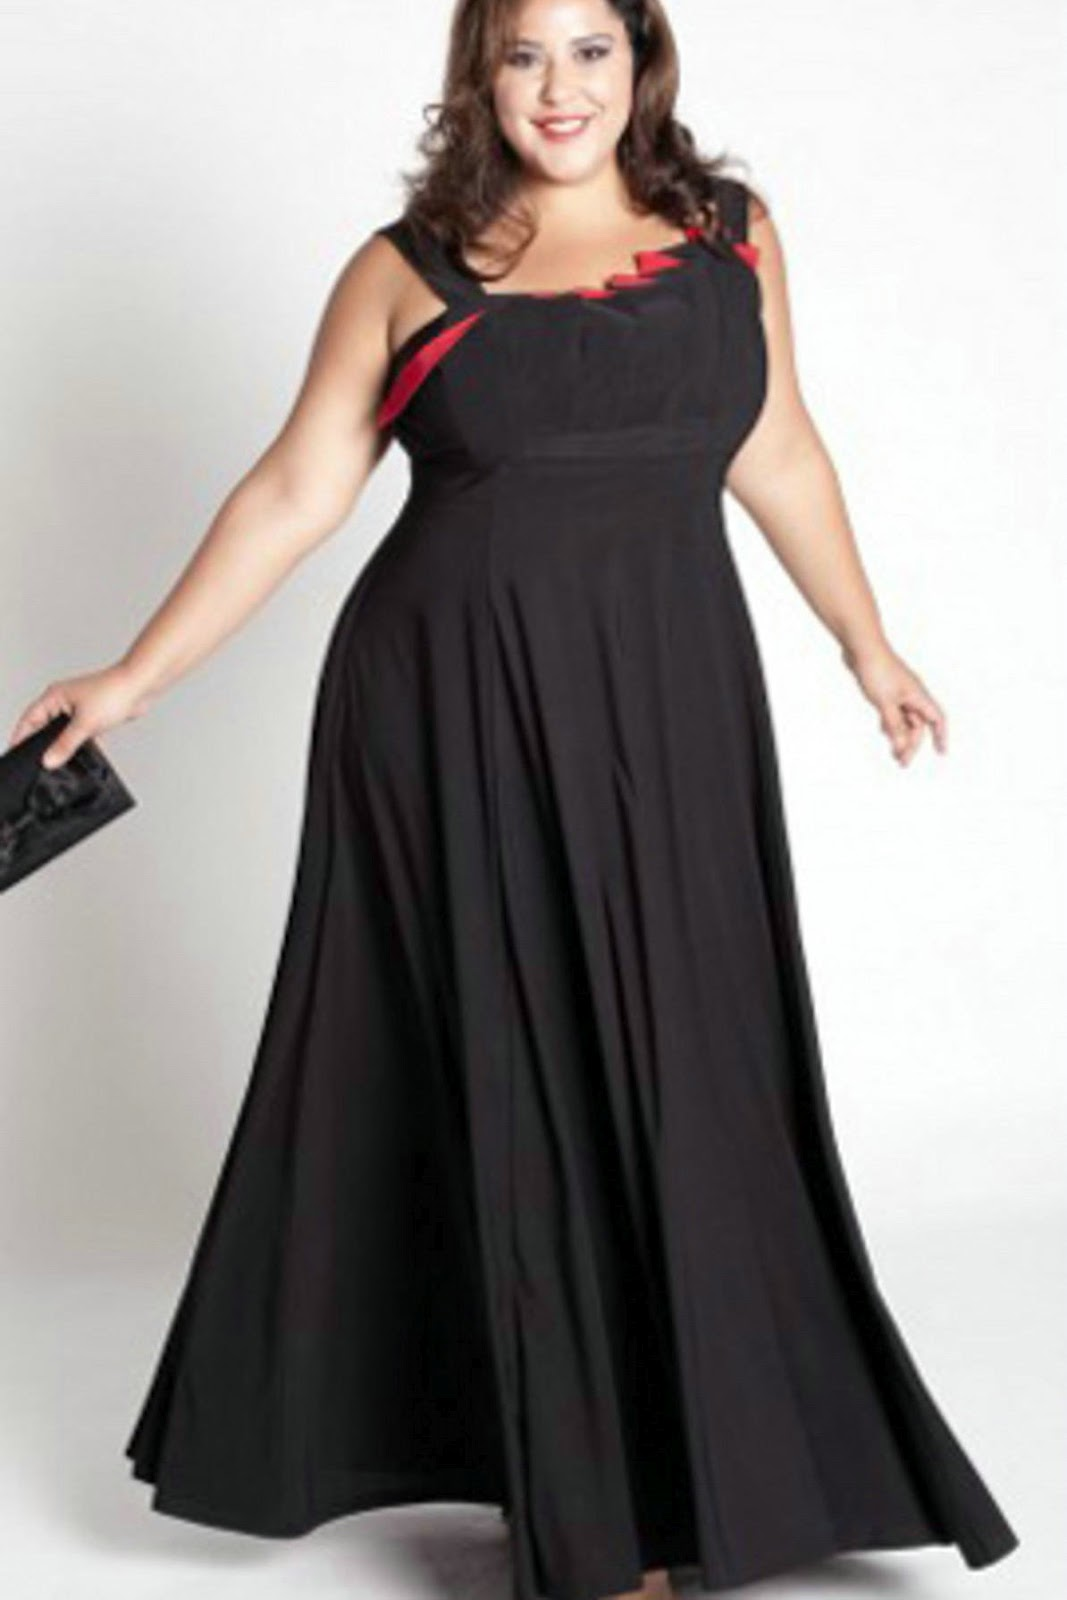 Mother Of The Bride Plus Size Dresses And Gowns July 2012